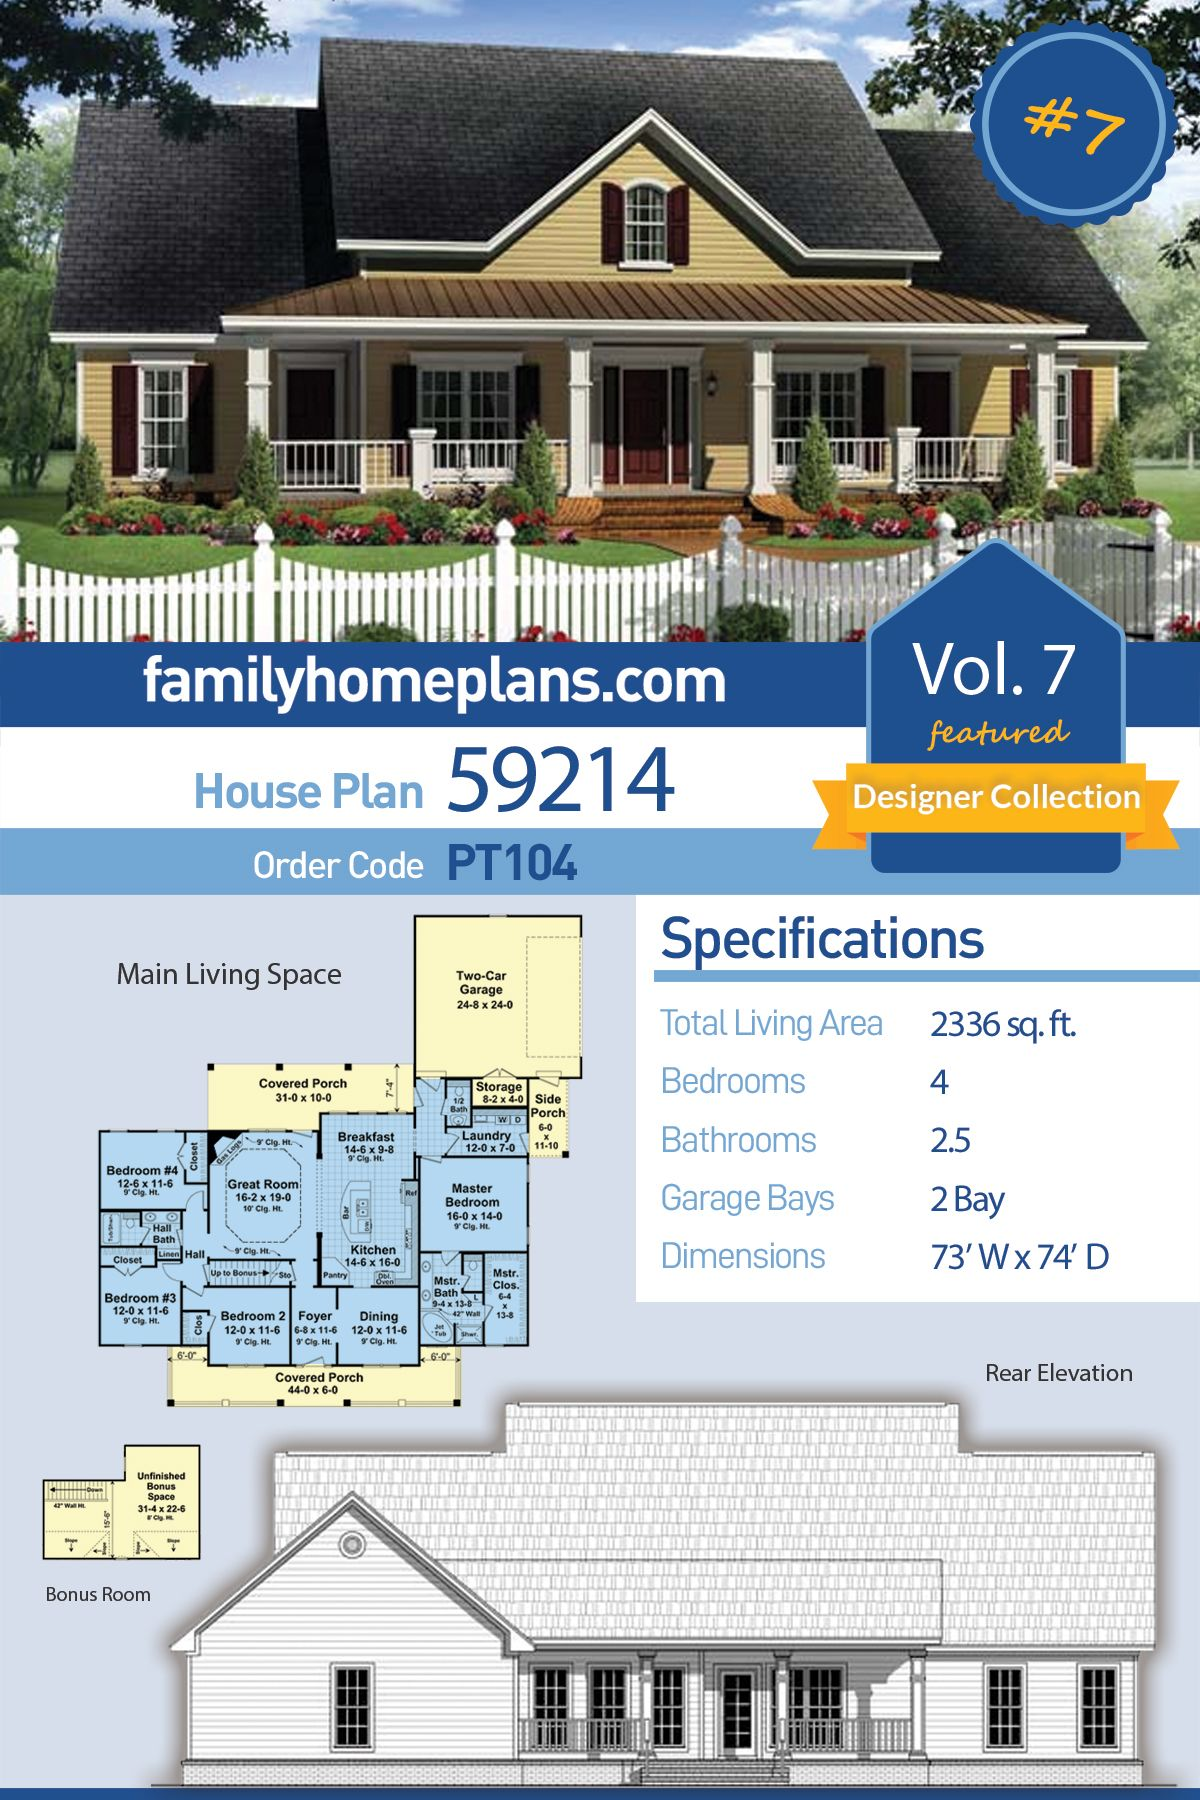 Traditional Style House Plan 59214 With 4 Bed 3 Bath 2 Car Garage With Images Family House Plans House Plans Traditional House Plans